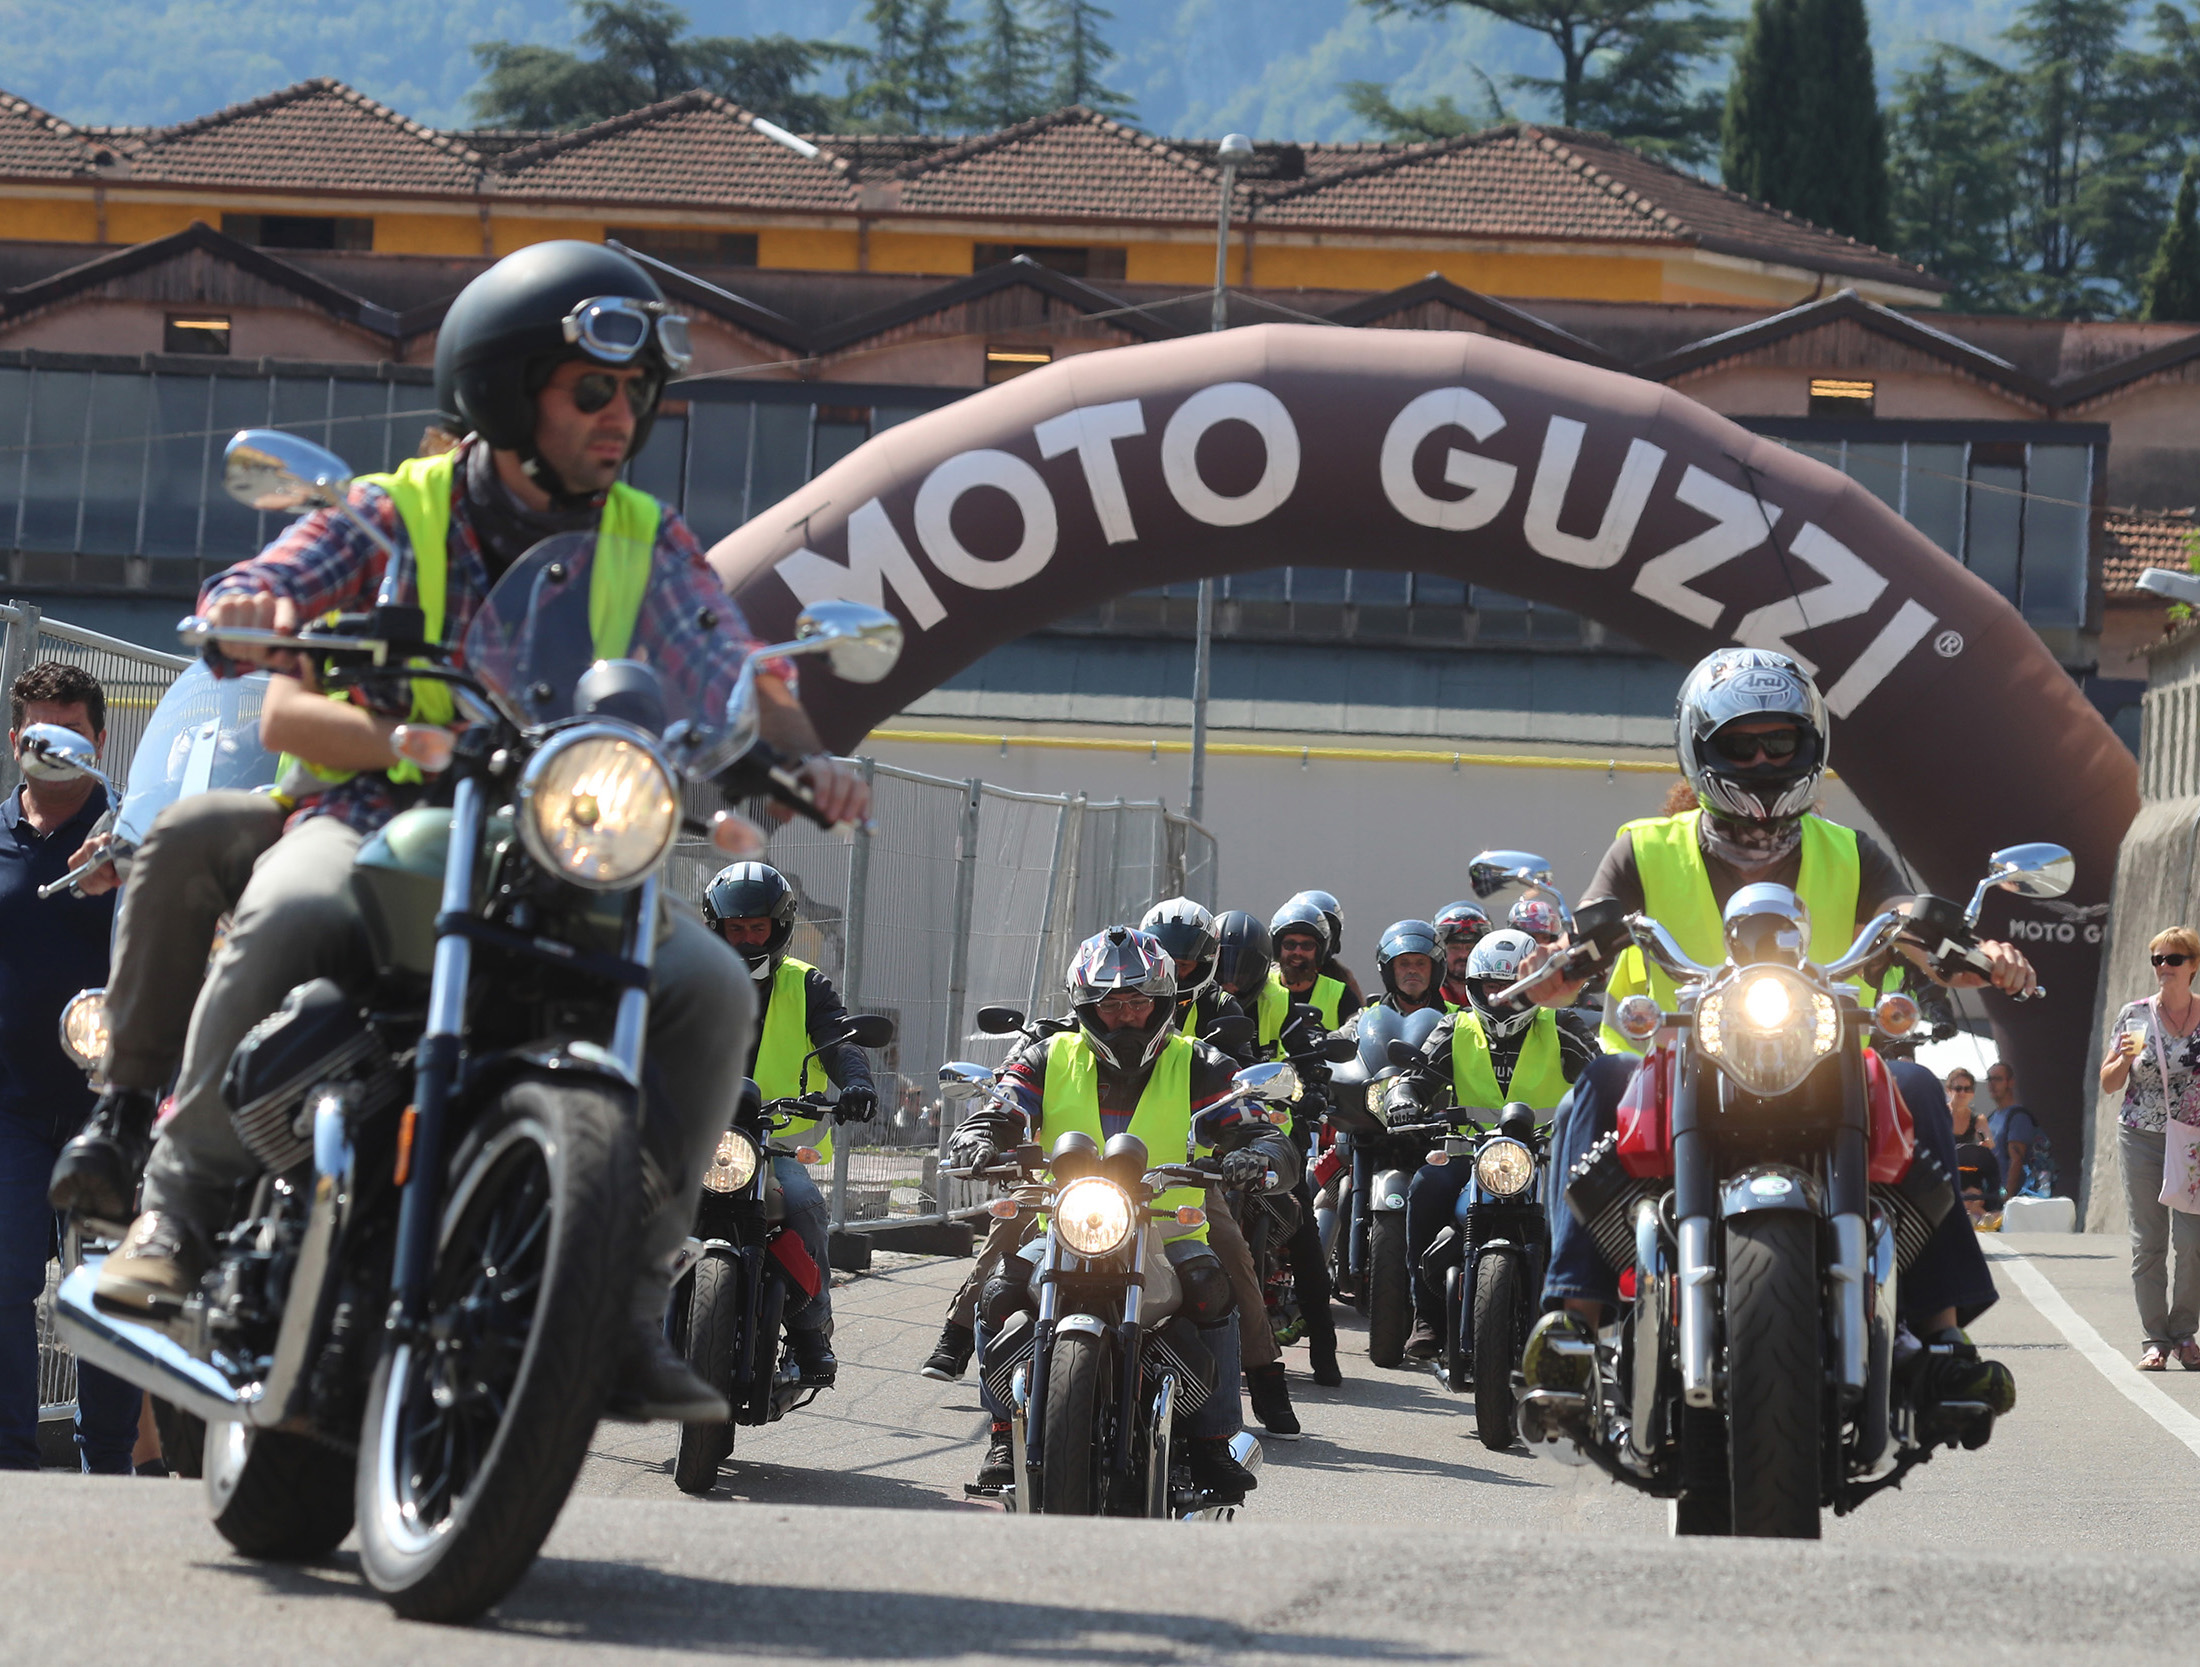 01 Moto Guzzi Open House 2018 Test Ride